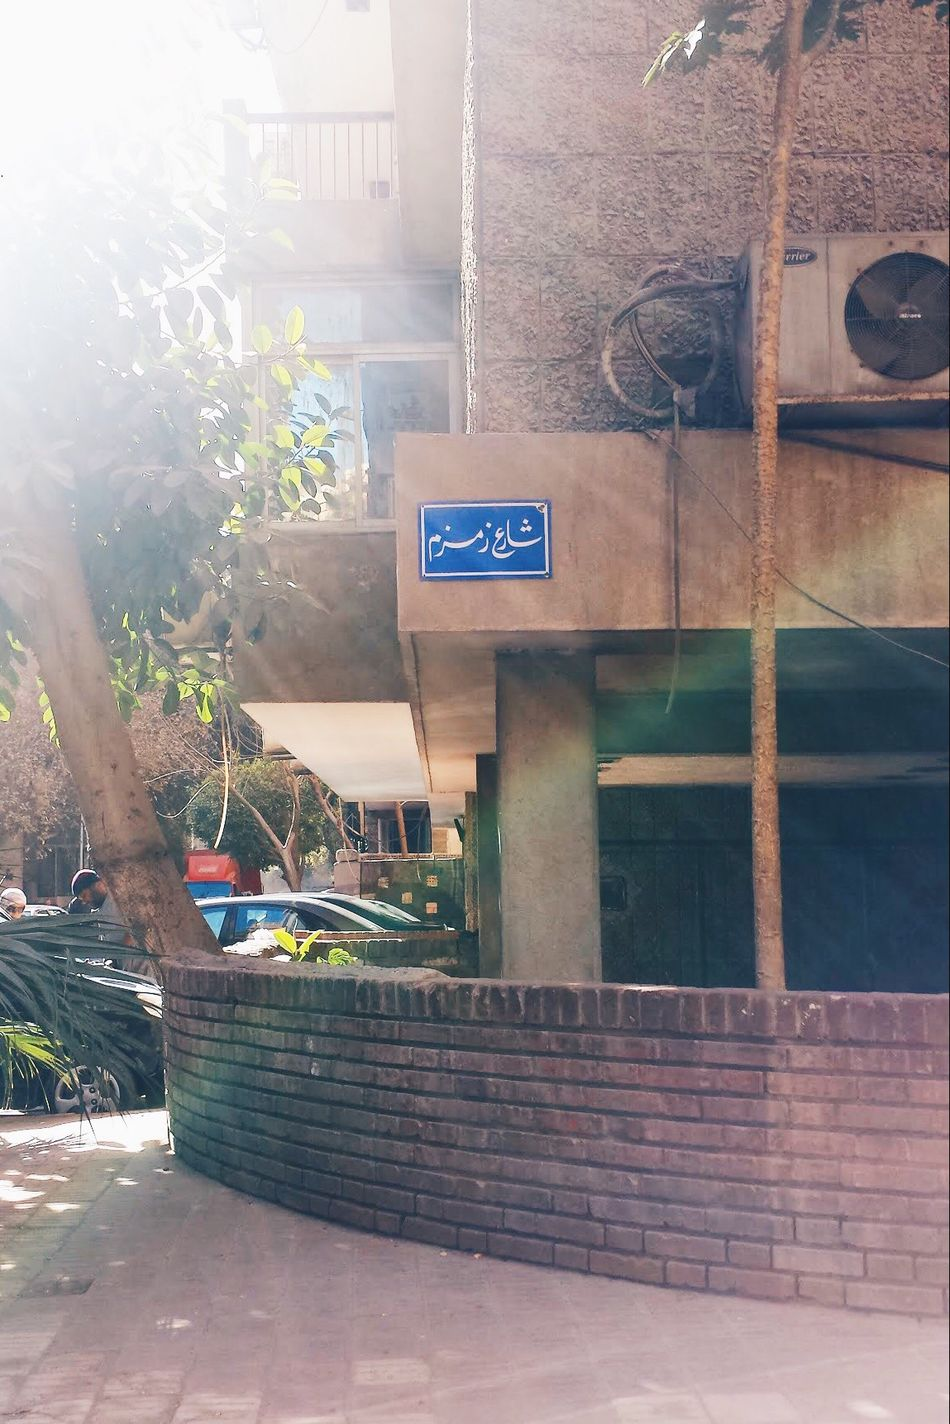 Egyptphotography Sunbeam Outdoors City Road Sign Day Built Structure Building Exterior Architecture Communication No People Cairo City Egypt Street In Front Of In Cairo Window Shadow Tree Taking Photos